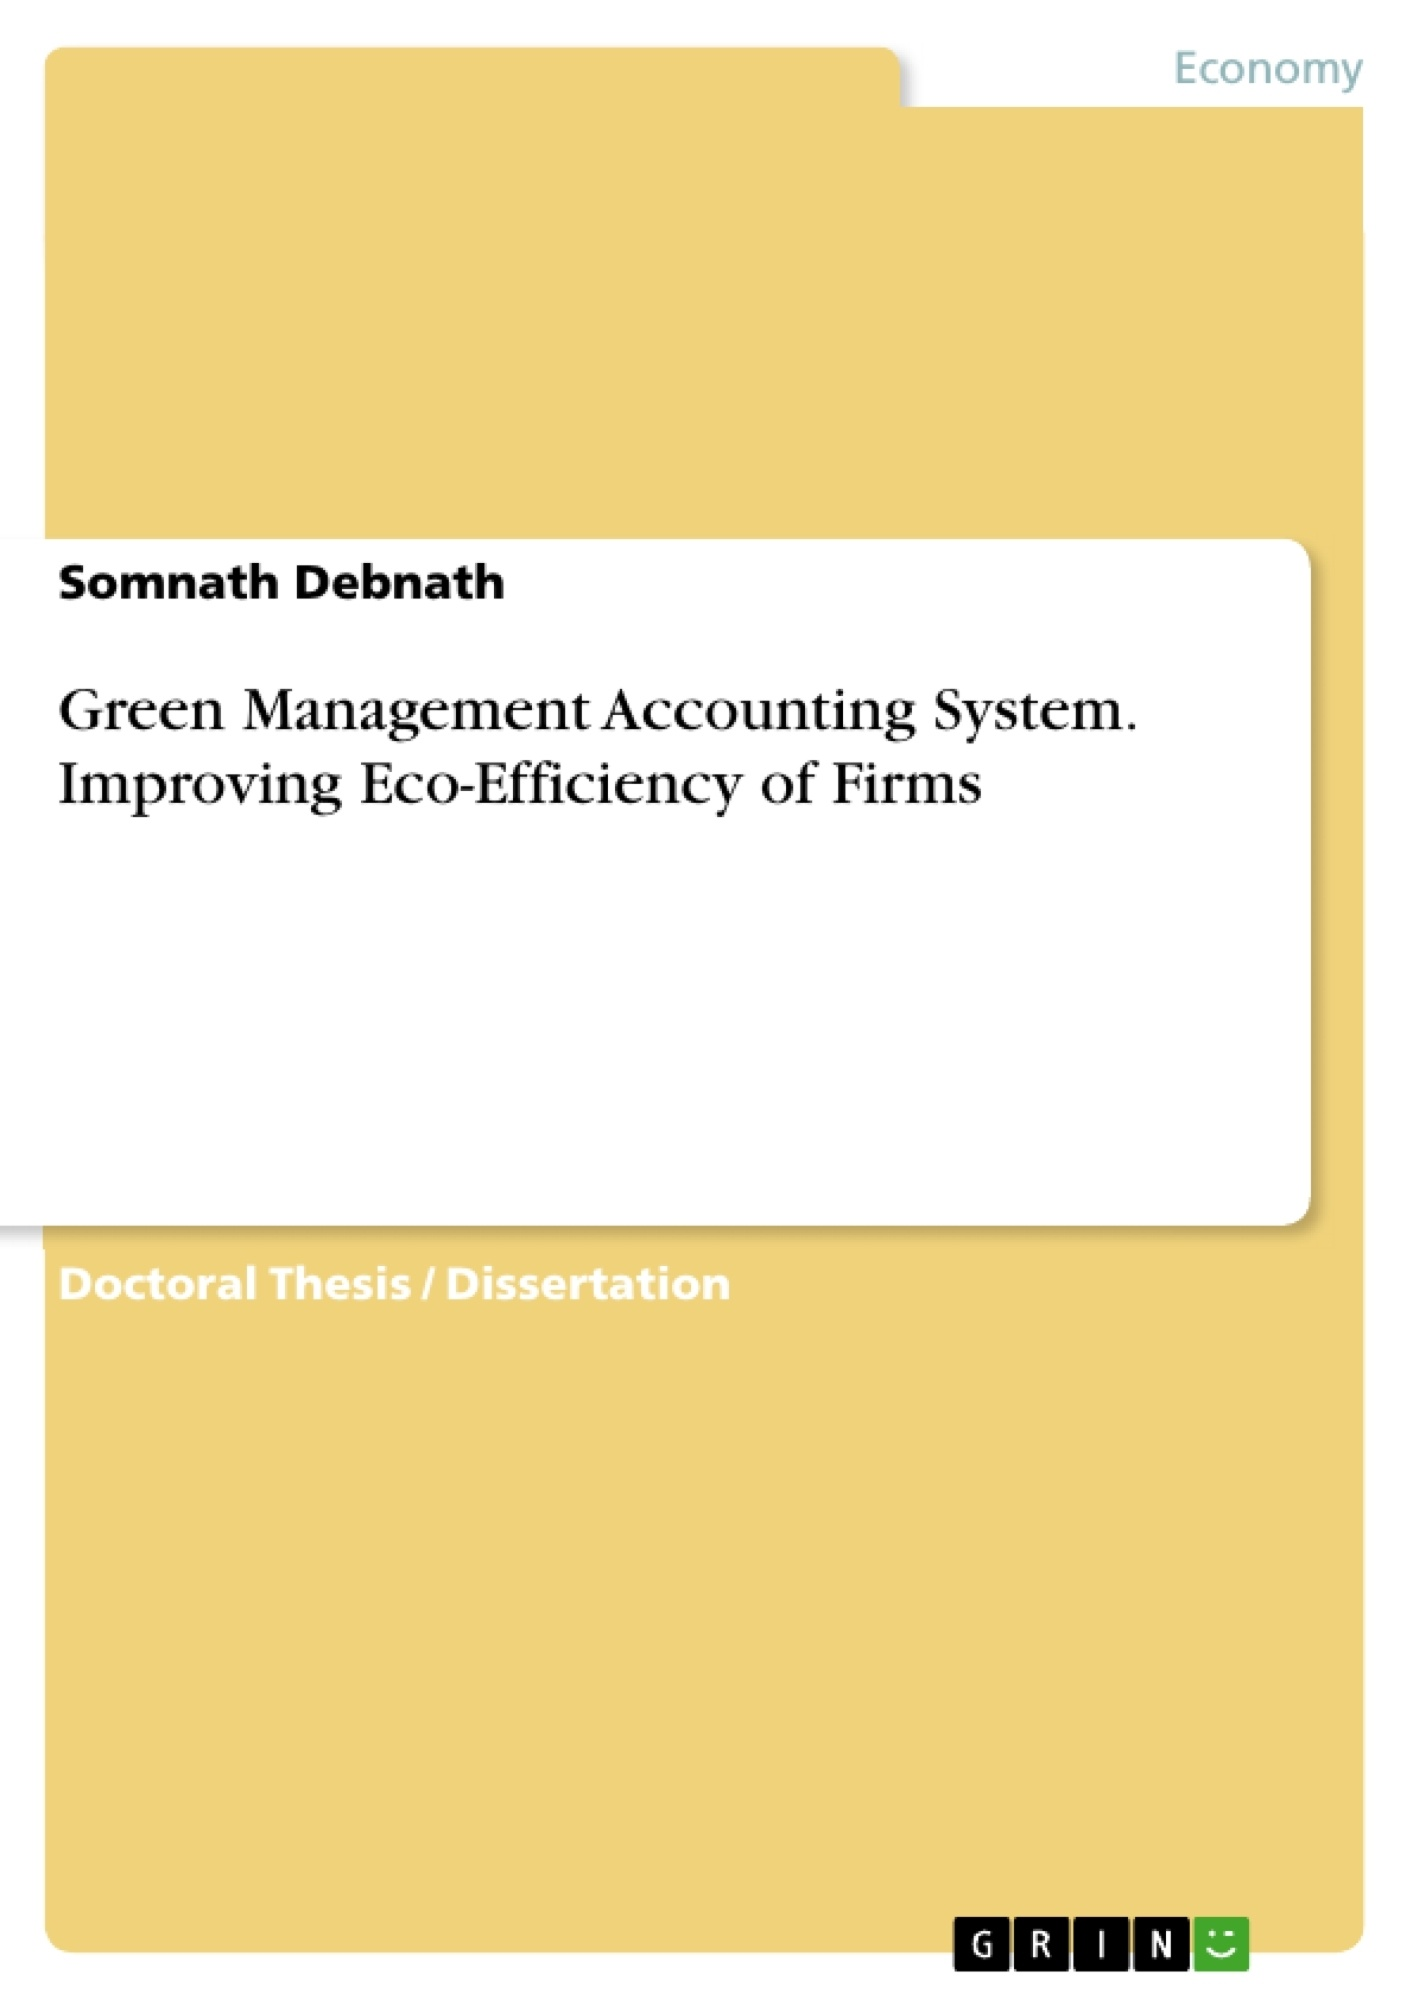 thesis accounting system